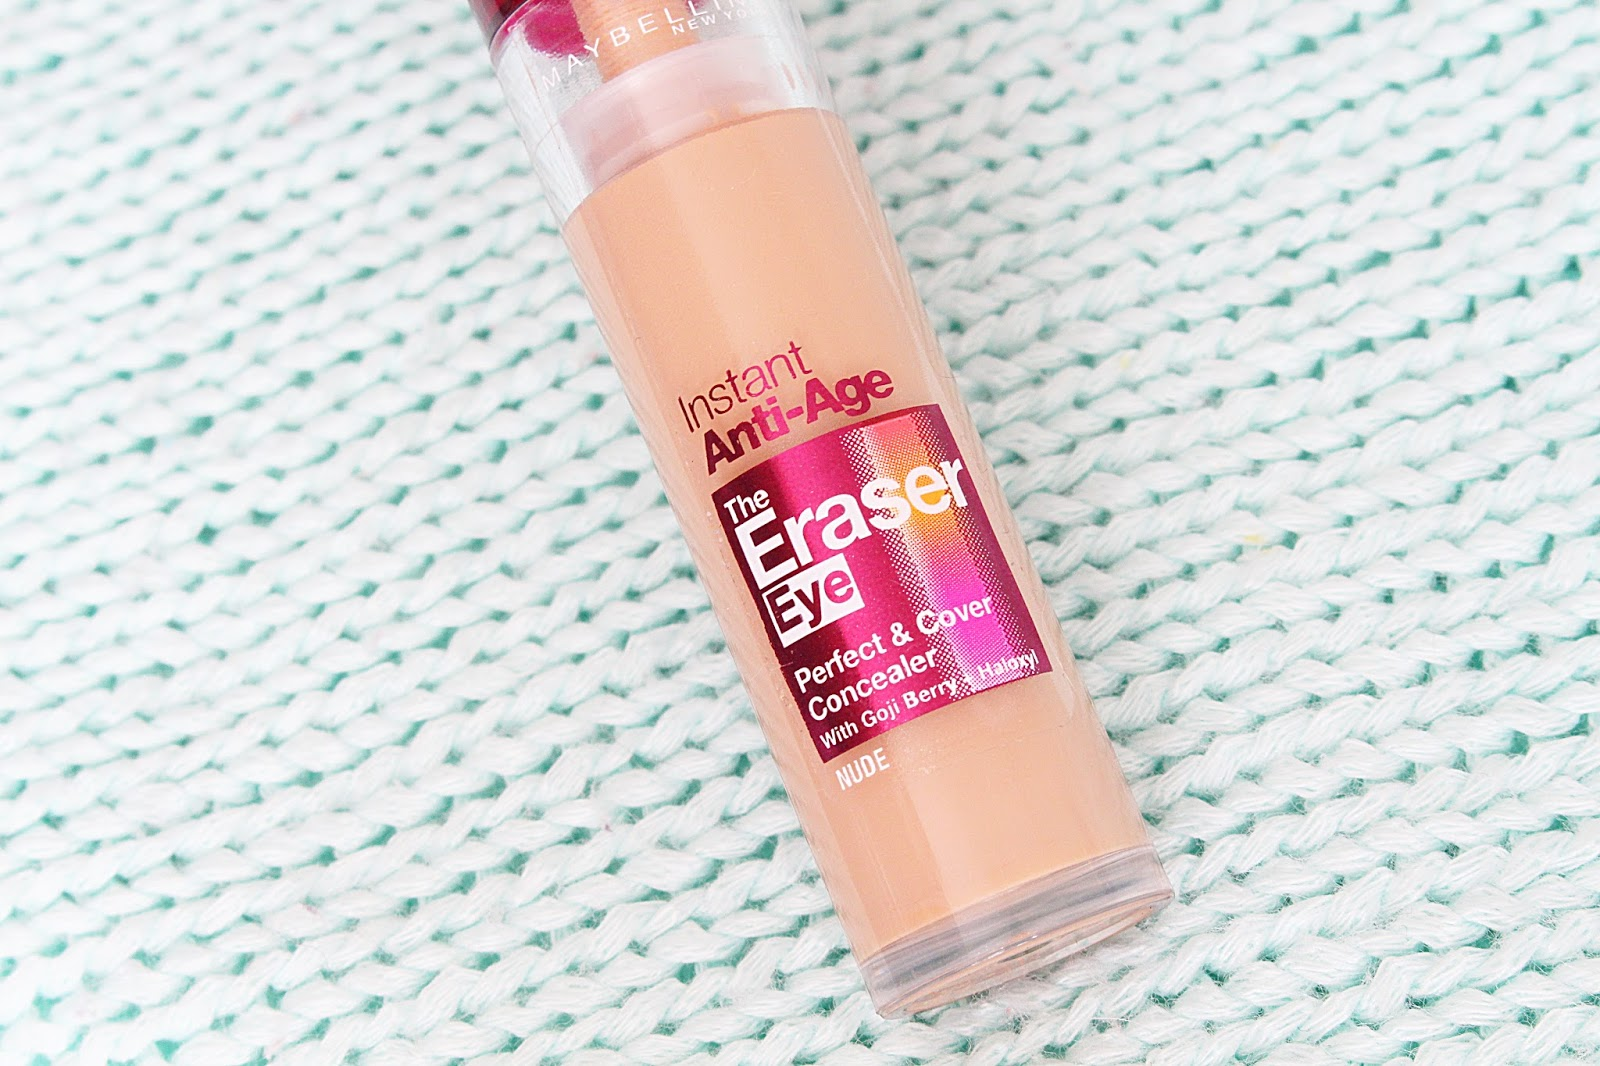 Maybelline Eraser Eye Concealer Blog Review 2015